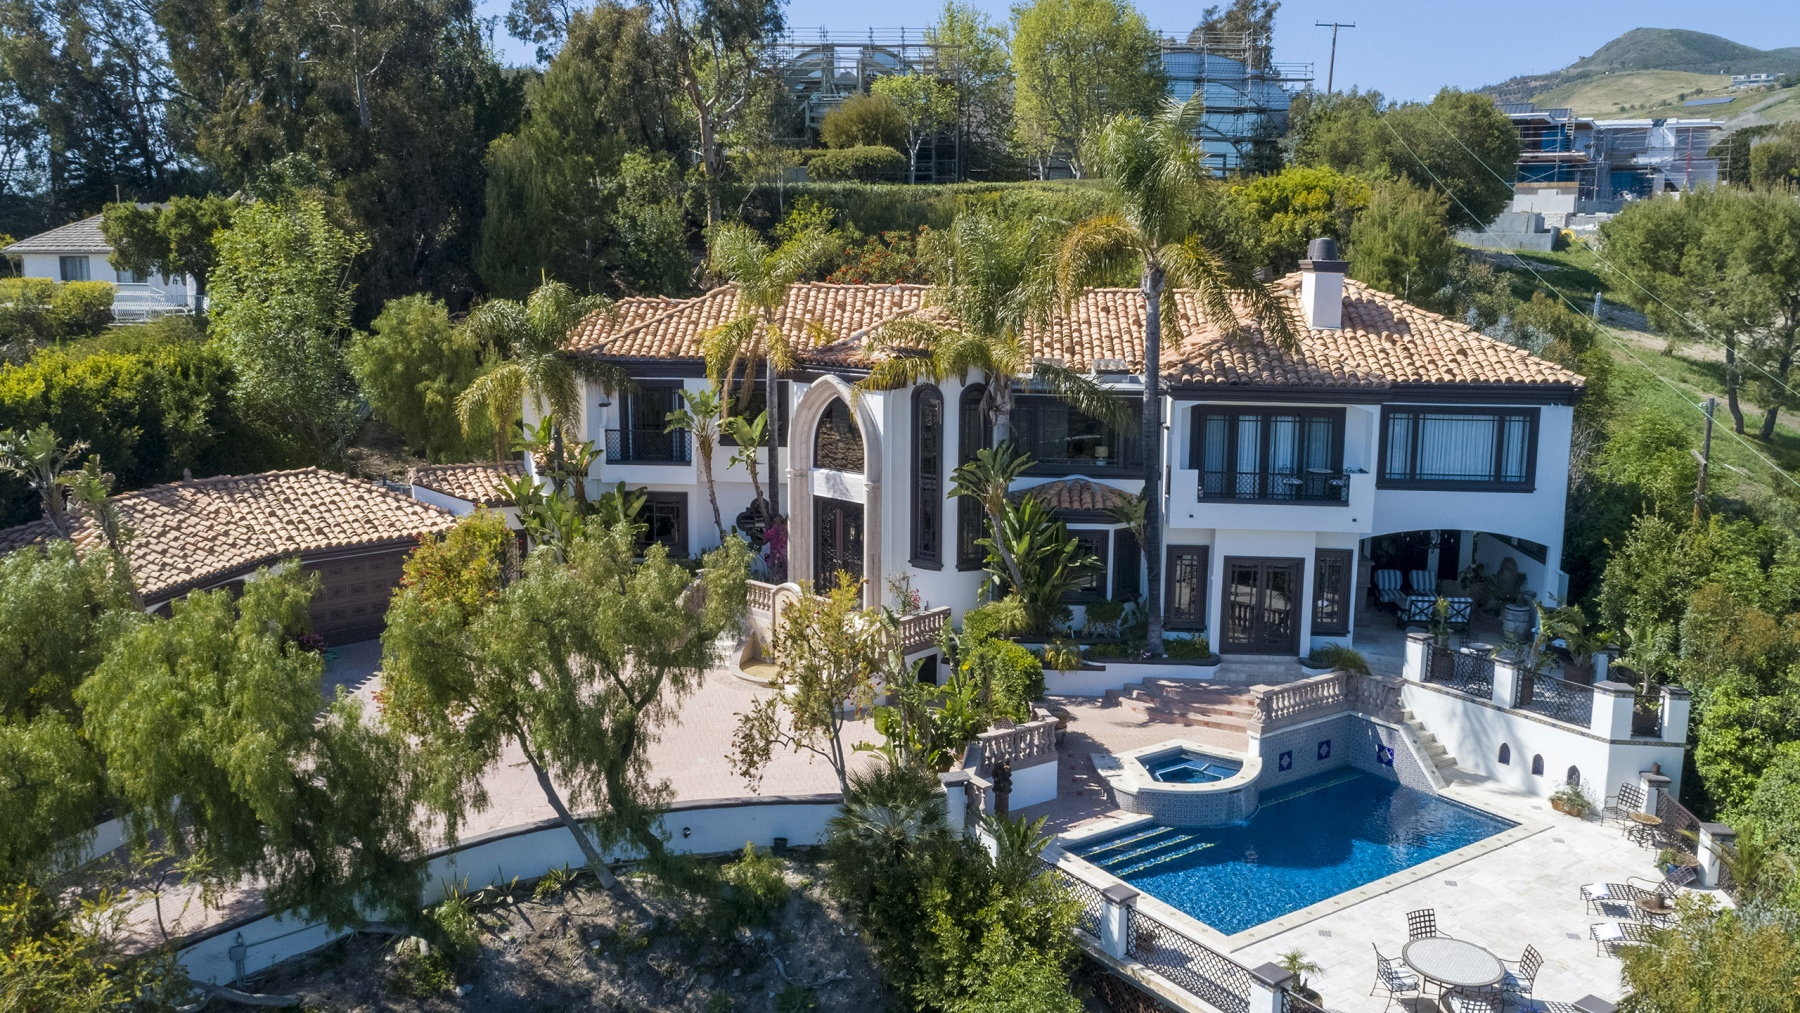 AERIAL-VIEW-OF-VILLA-FRONT-WITH-POOL-2560